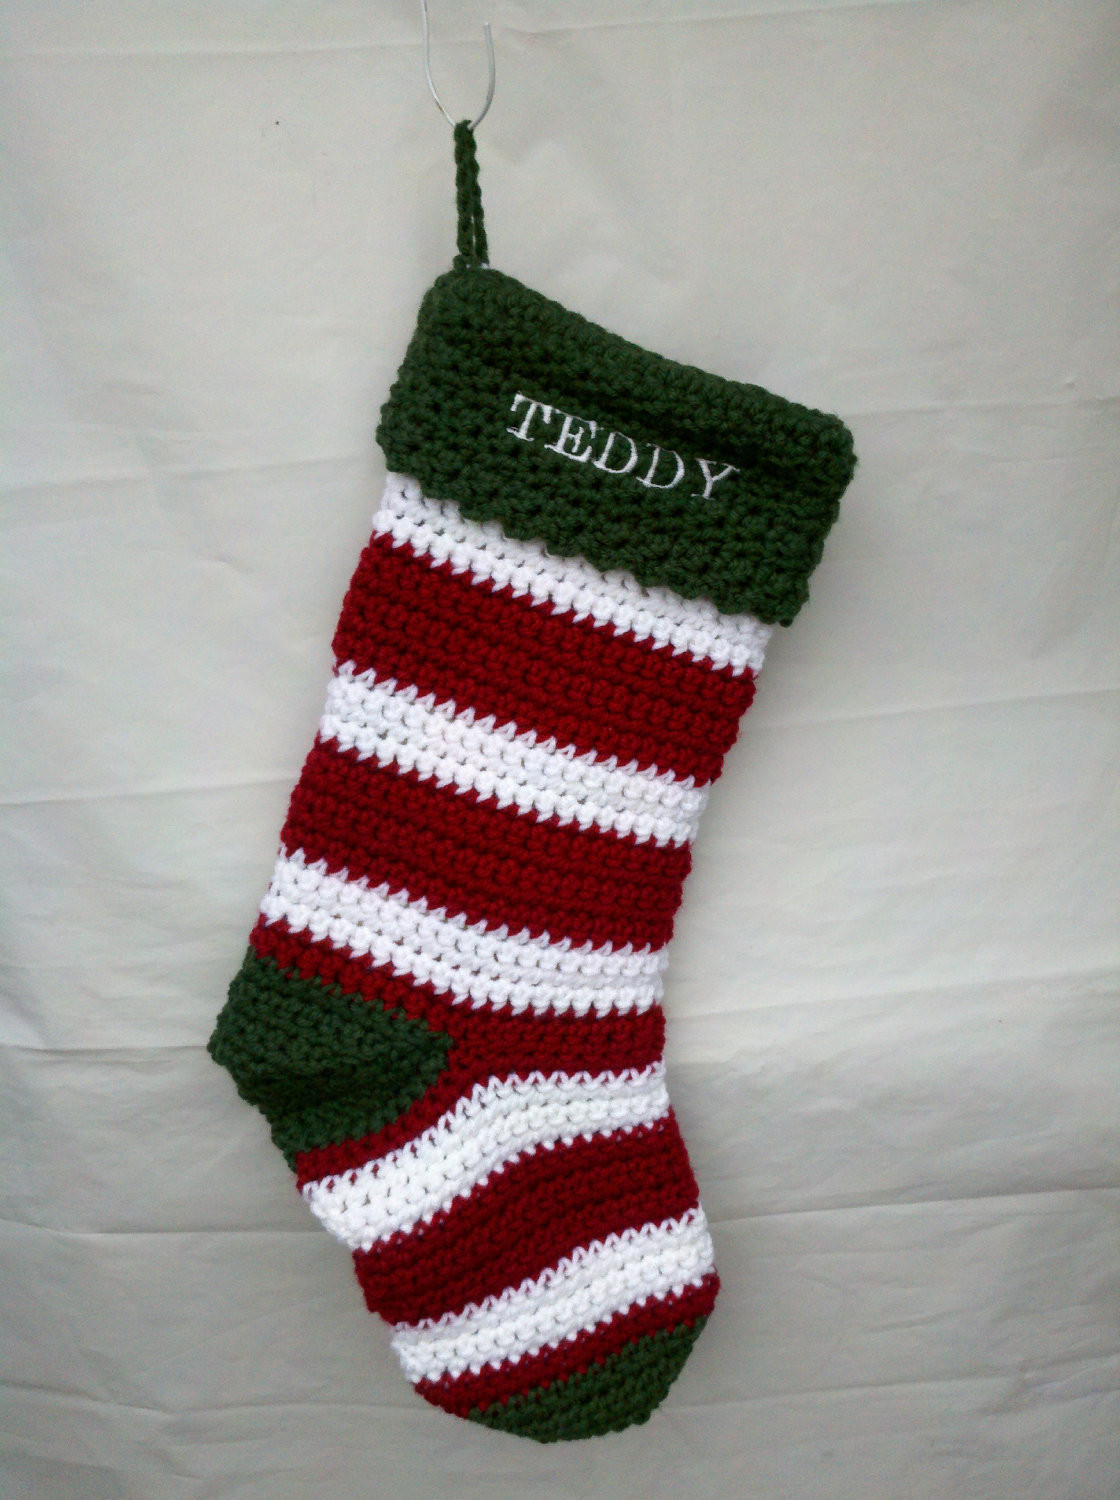 Crochet Stocking Inspirational 40 All Free Crochet Christmas Stocking Patterns Patterns Hub Of Unique 48 Models Crochet Stocking